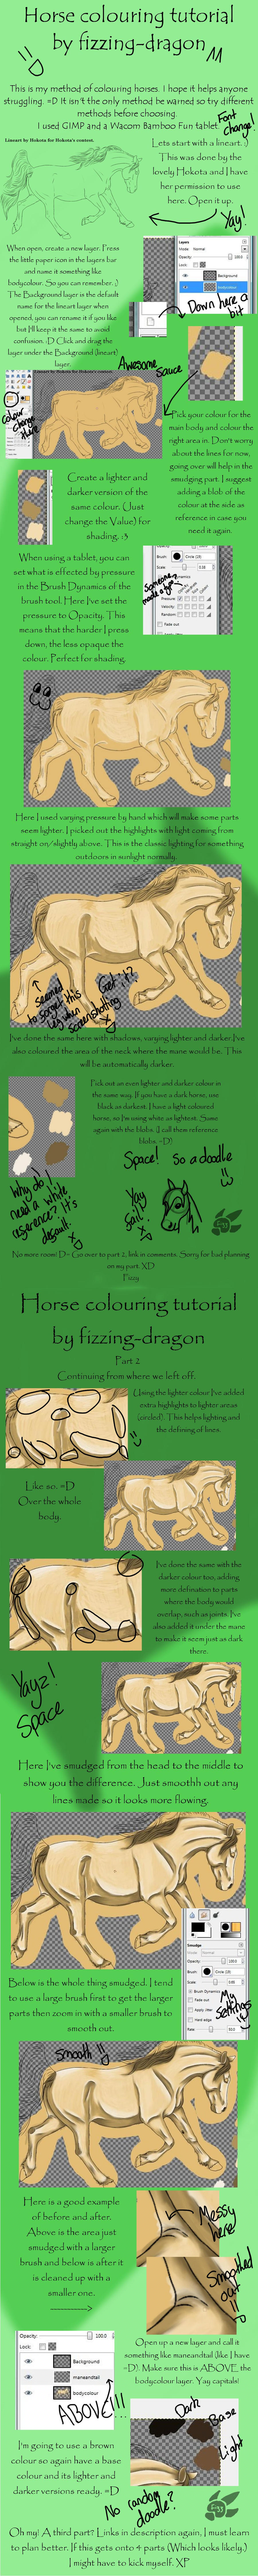 Horse colouring tuto- Part 1 by fizzing-dragon